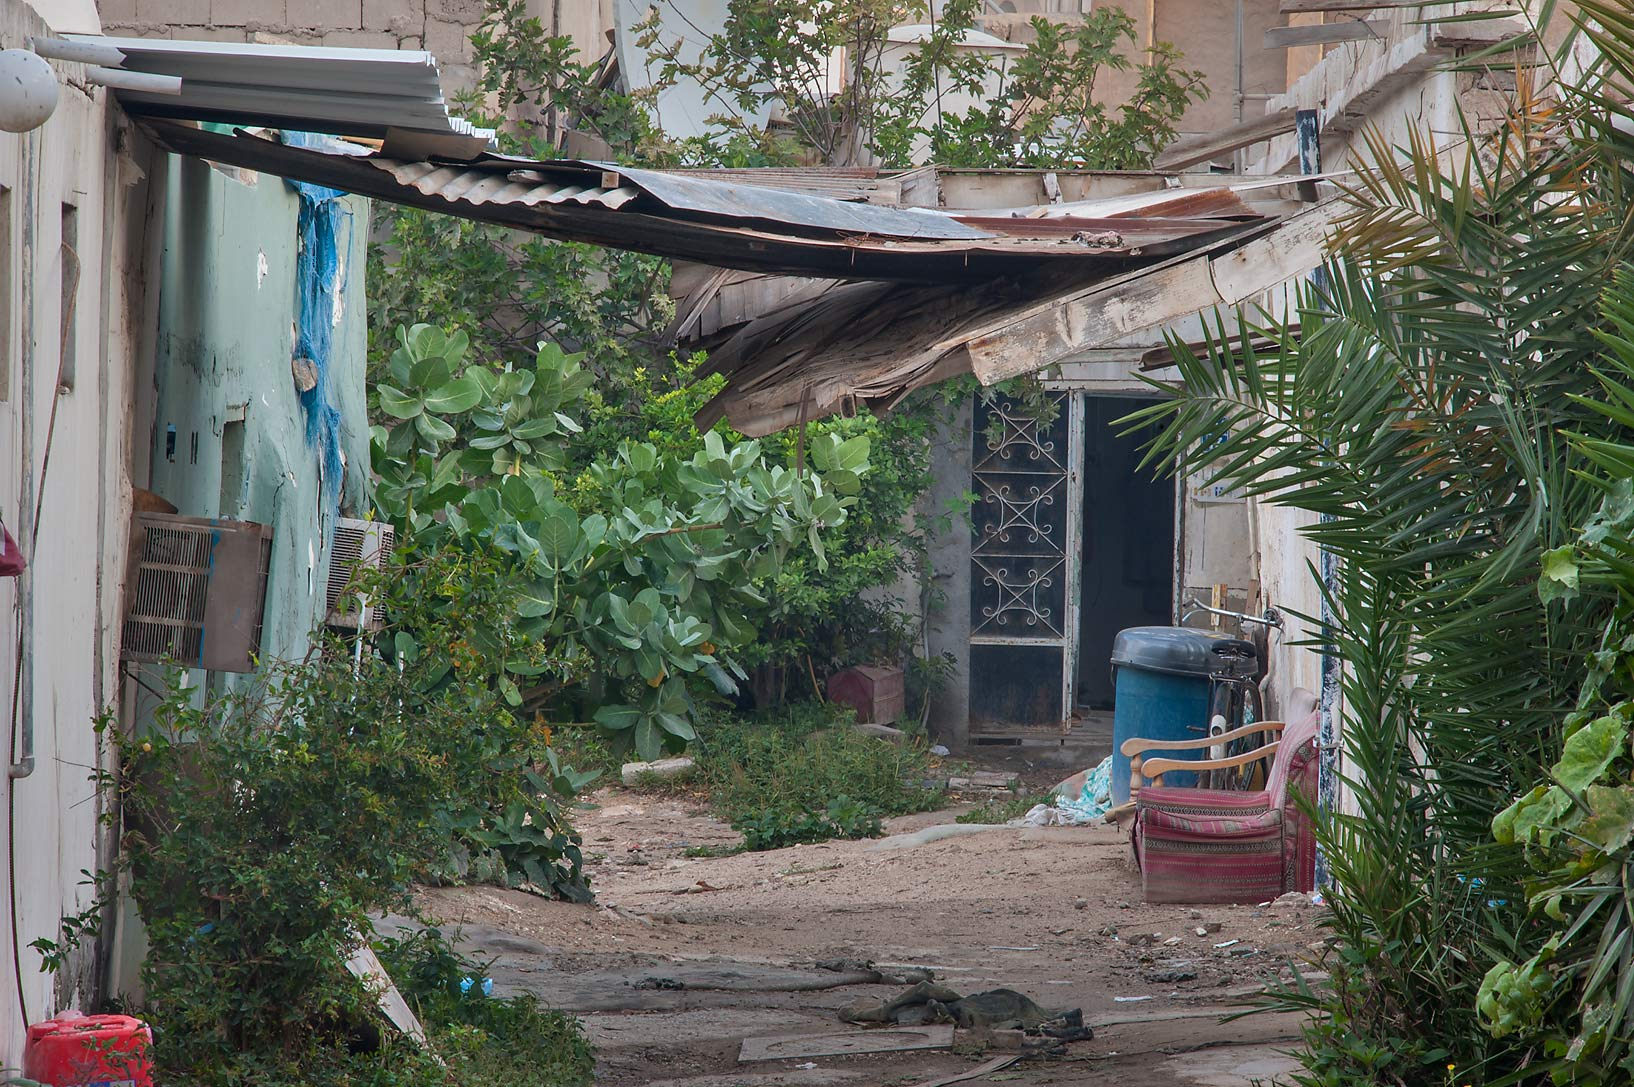 Dense vegetation in alleyway (sikka) near Umm Wishad St. in Musheirib area. Doha, Qatar